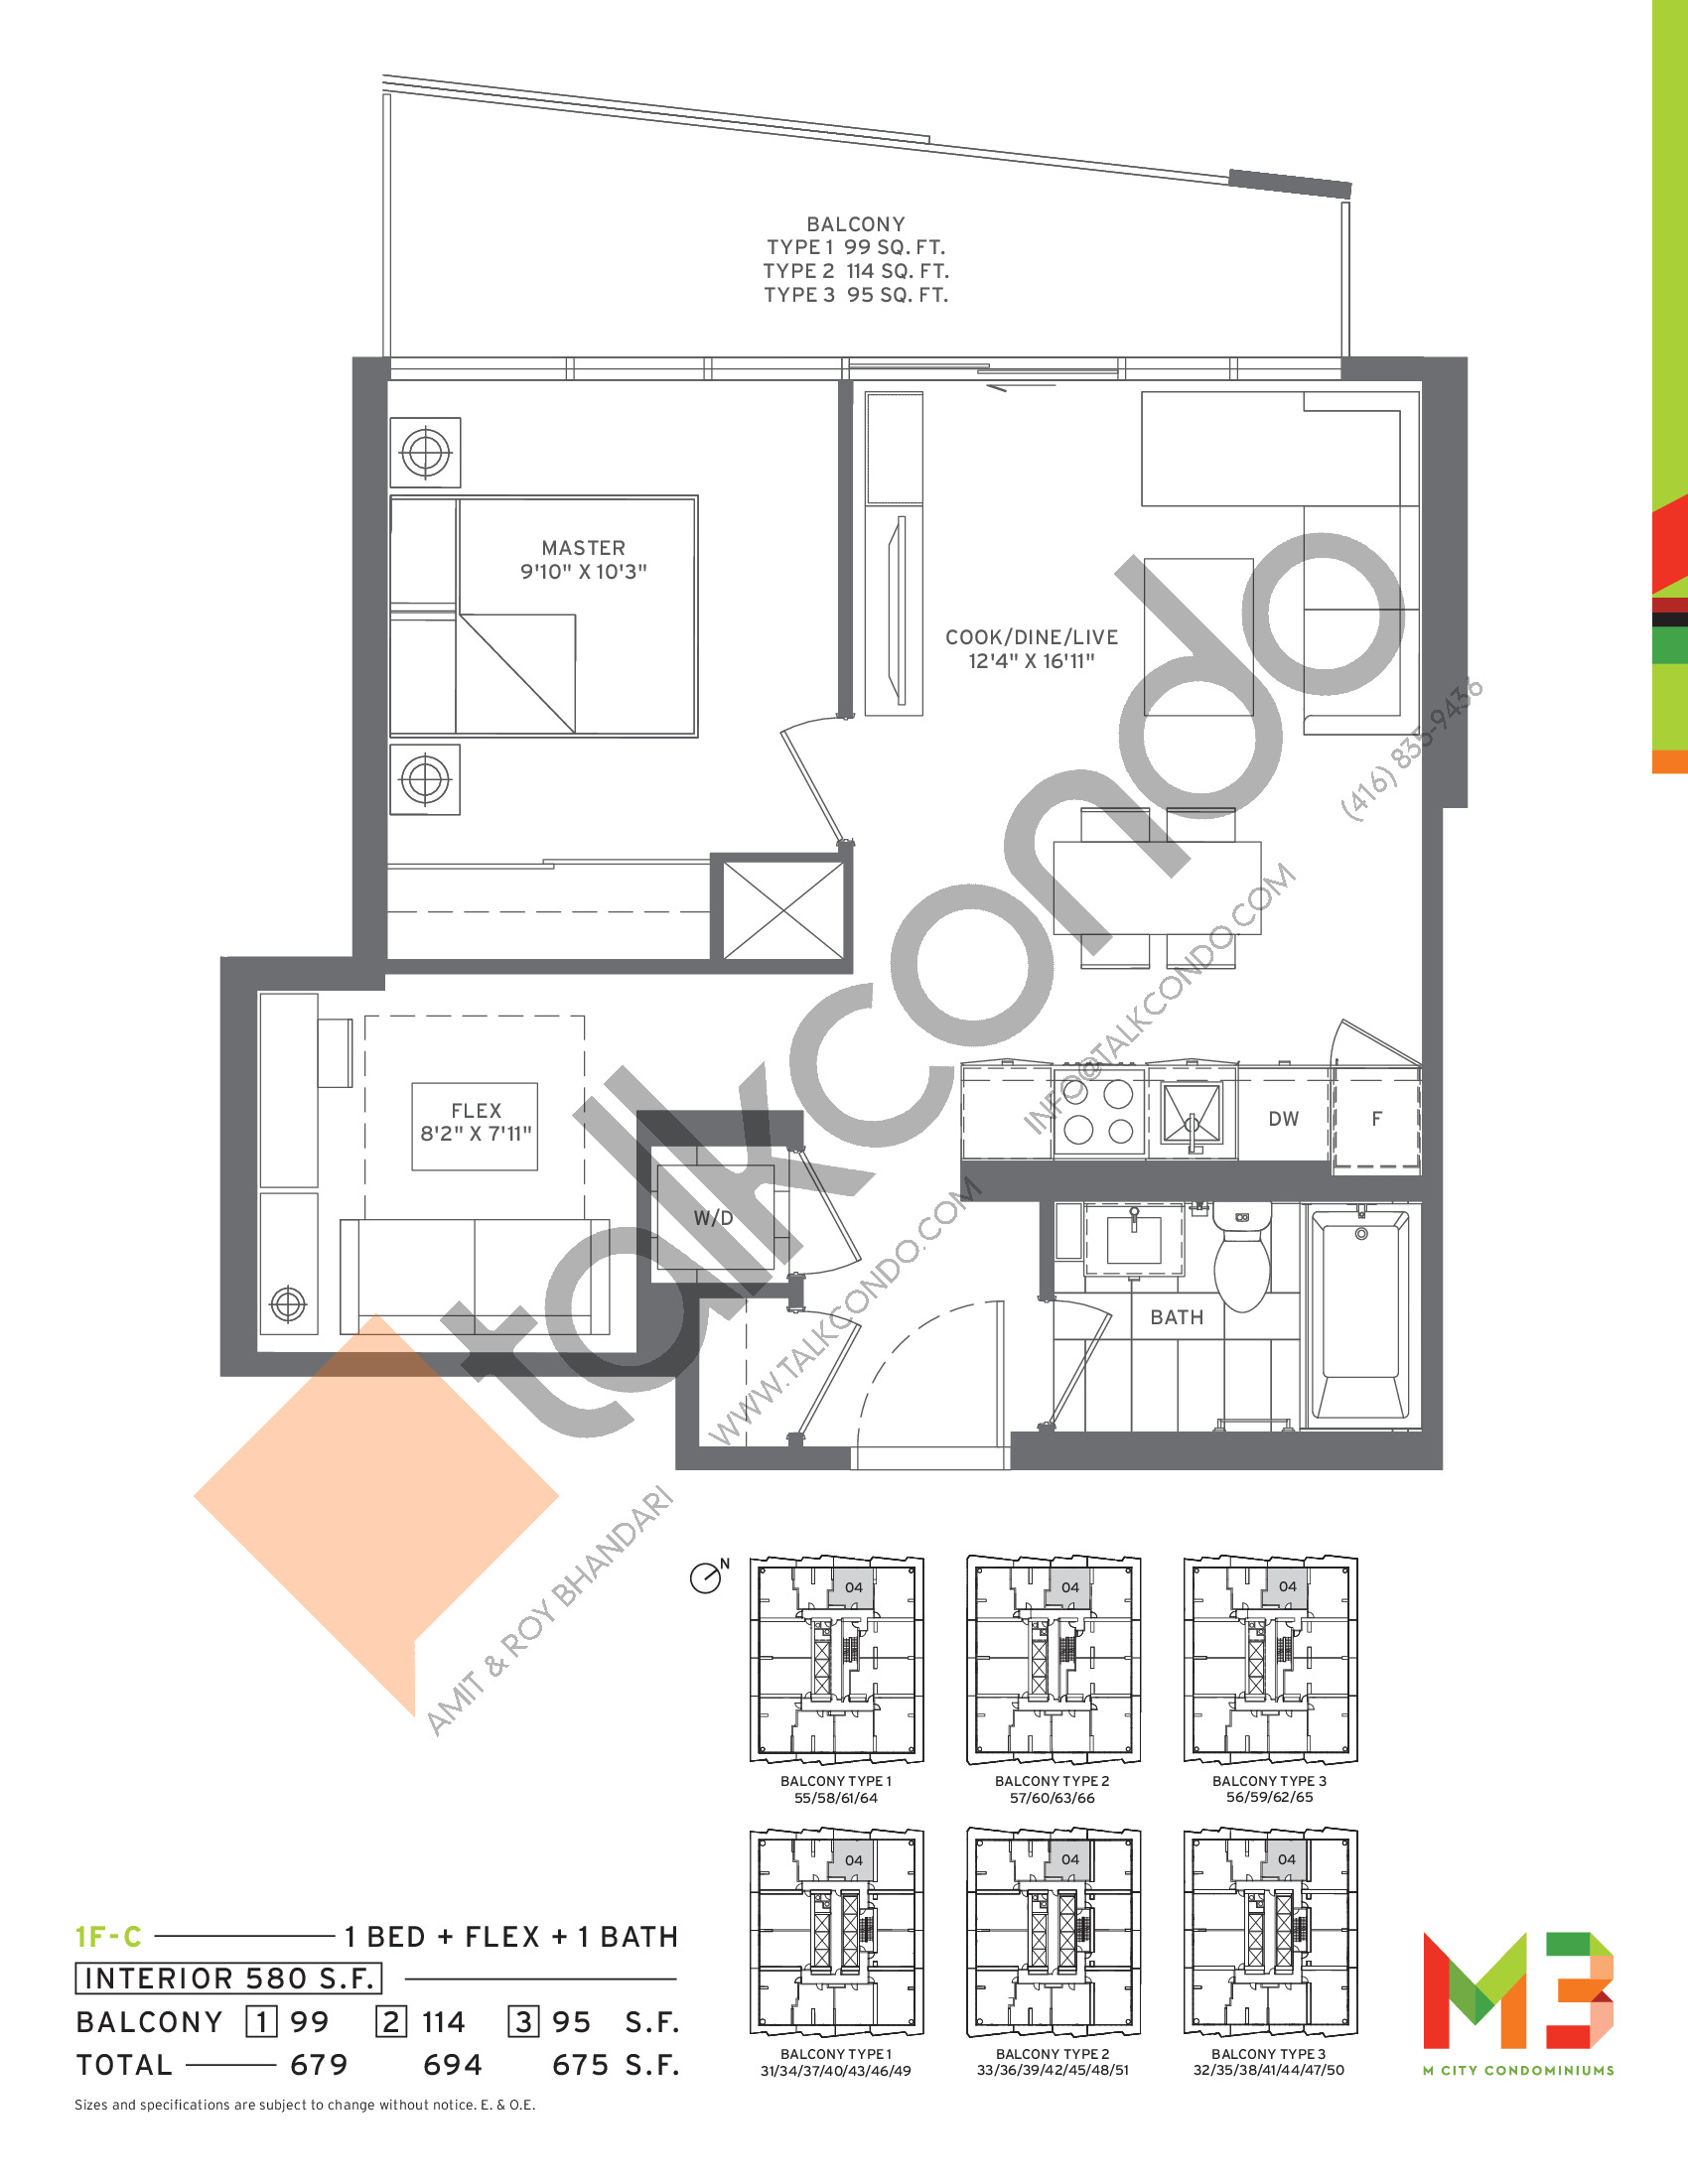 1F-C Floor Plan at M3 Condos - 580 sq.ft